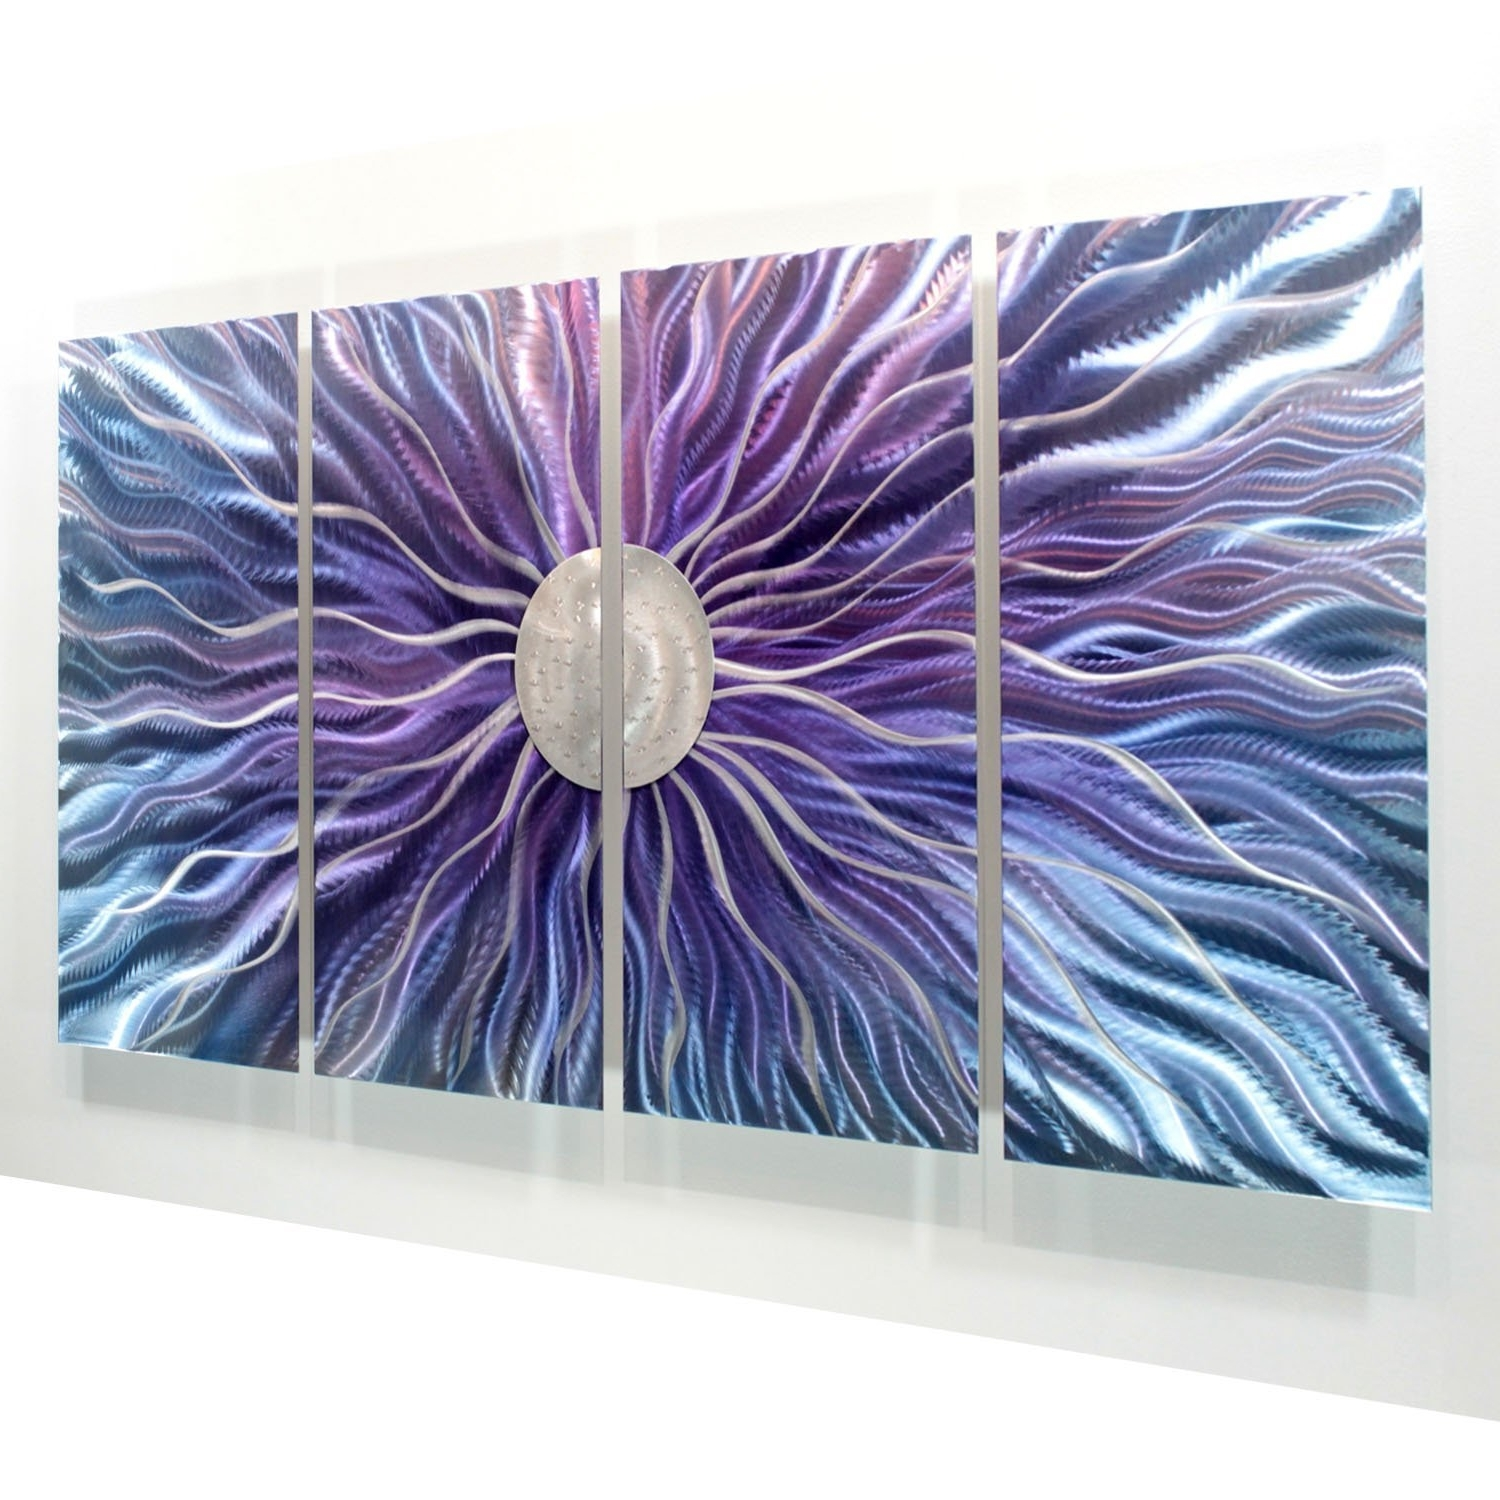 Amazon: Large Blue, Purple, And Silver Metal Wall Art Painting In Famous Large Metal Wall Art Sculptures (View 8 of 15)